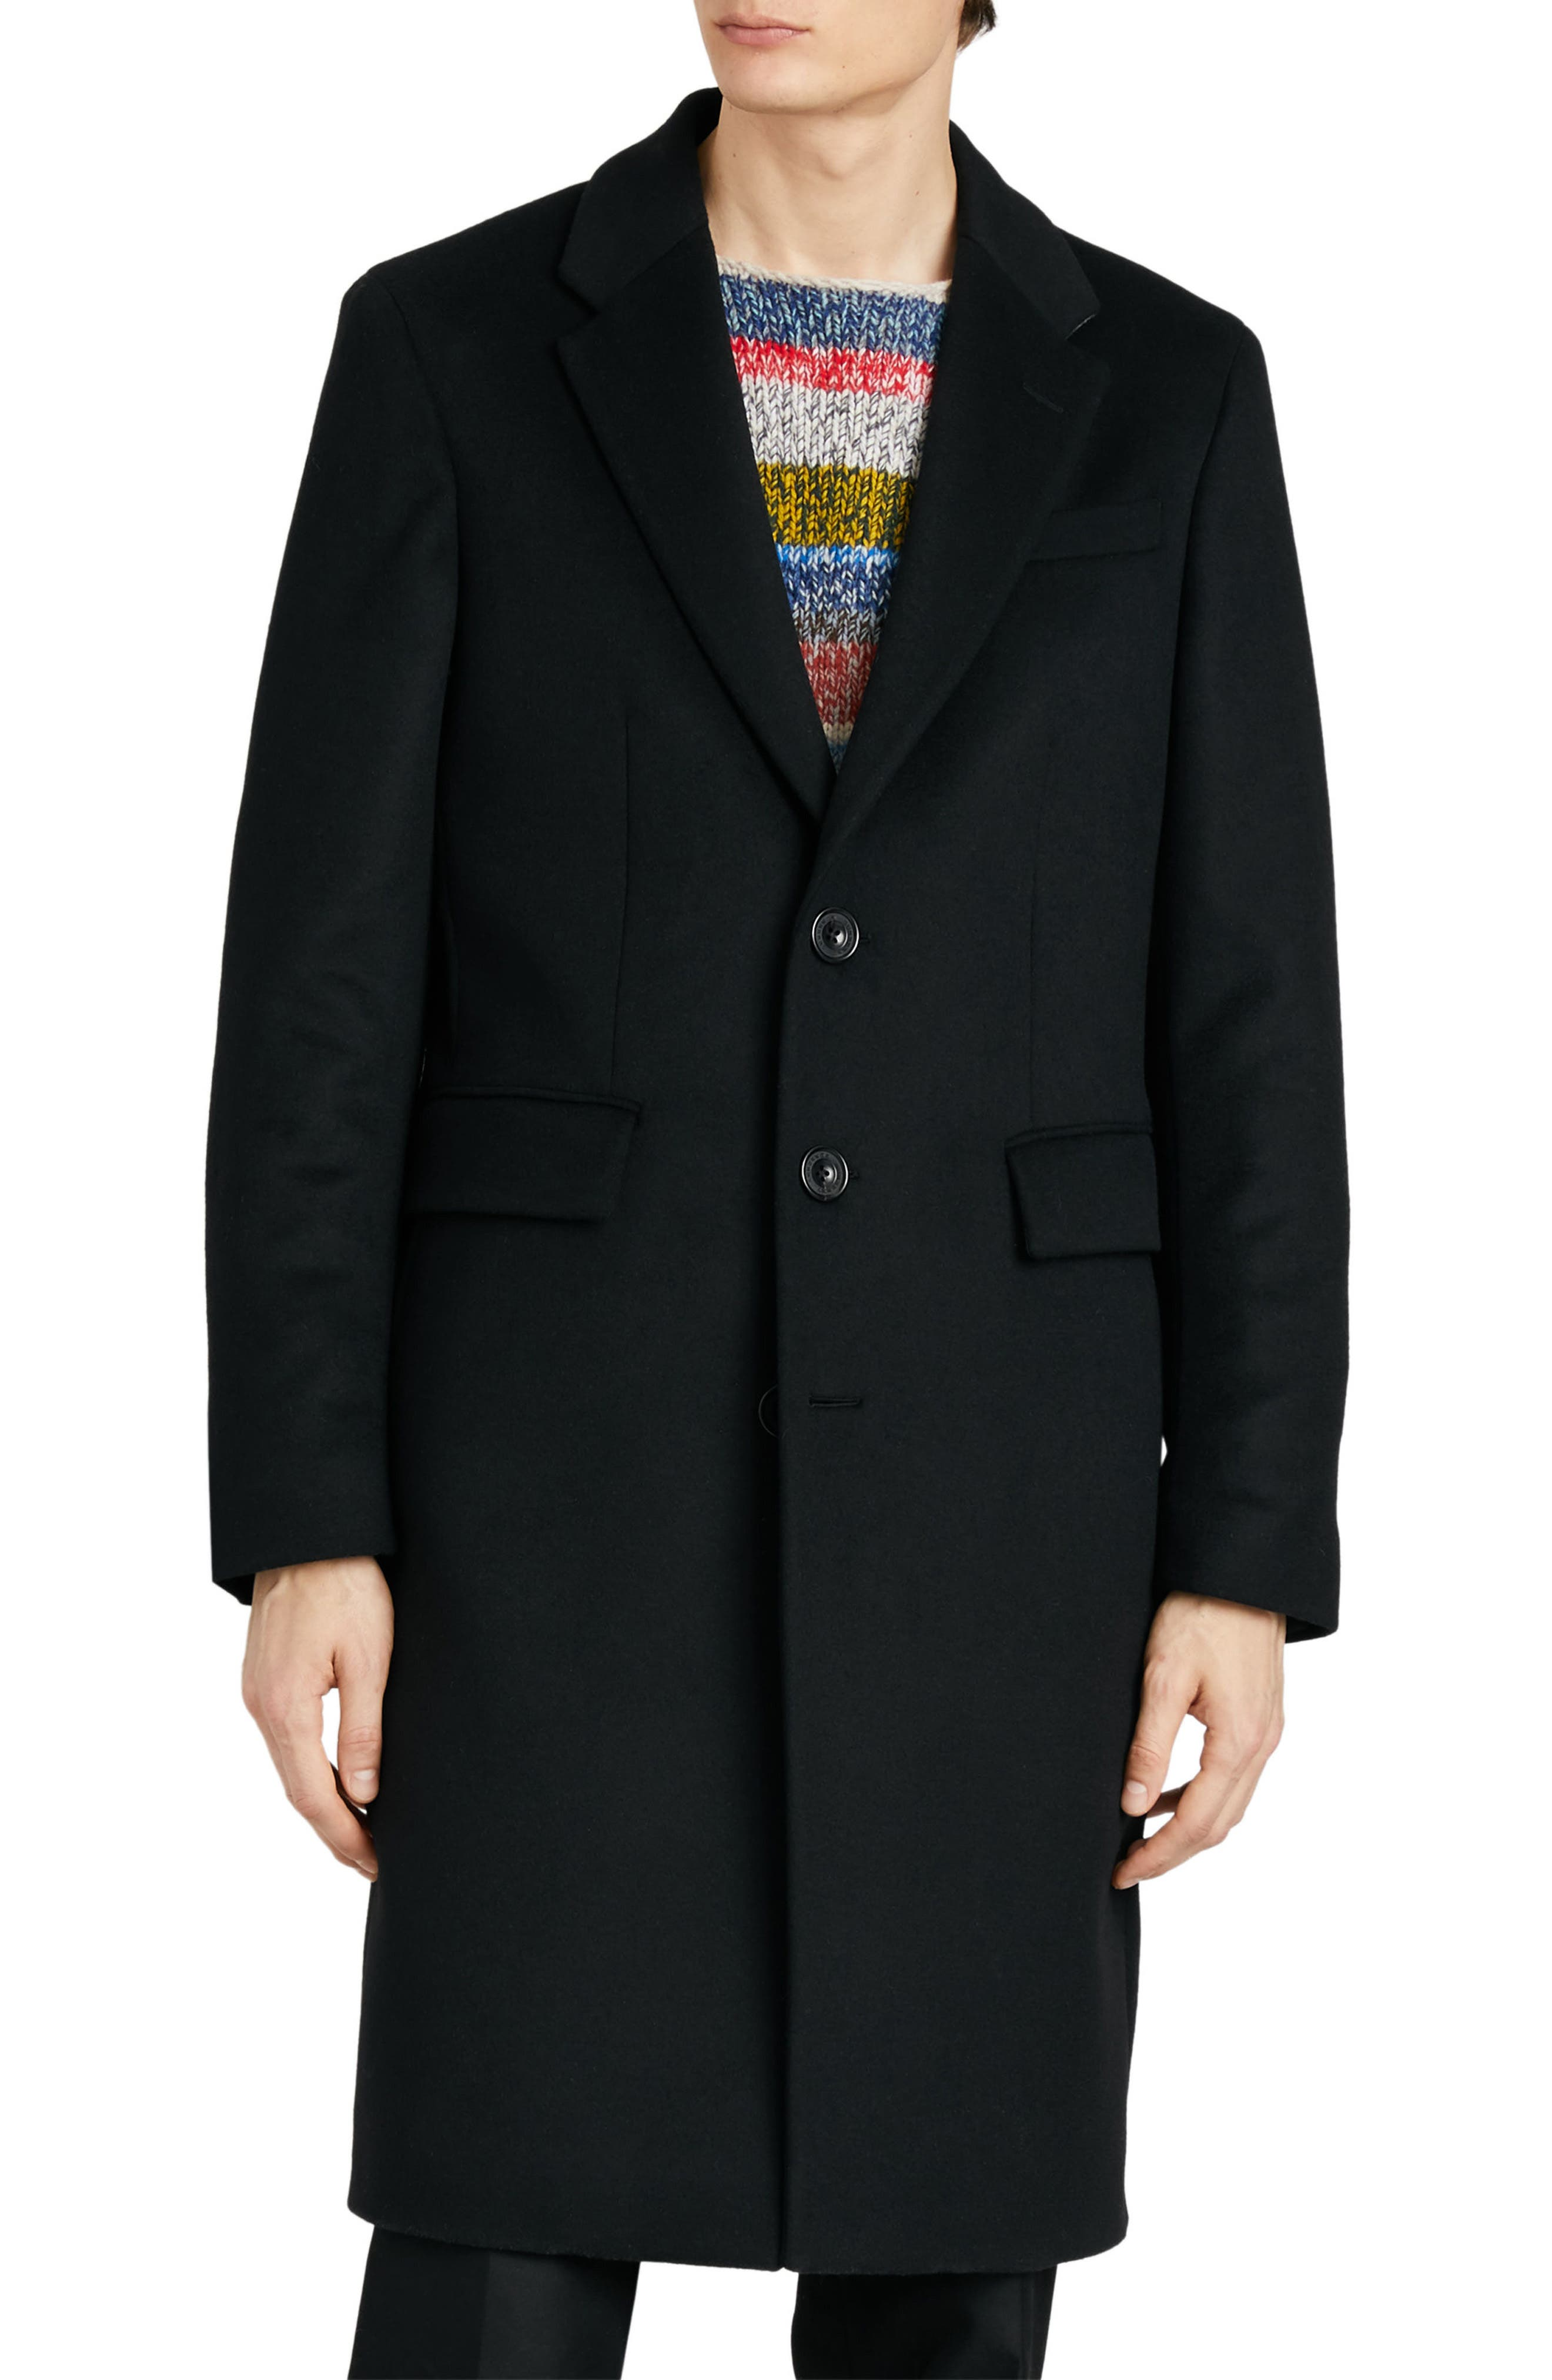 BURBERRY Halesowen Wool and Cashmere Overcoat, Main, color, 001